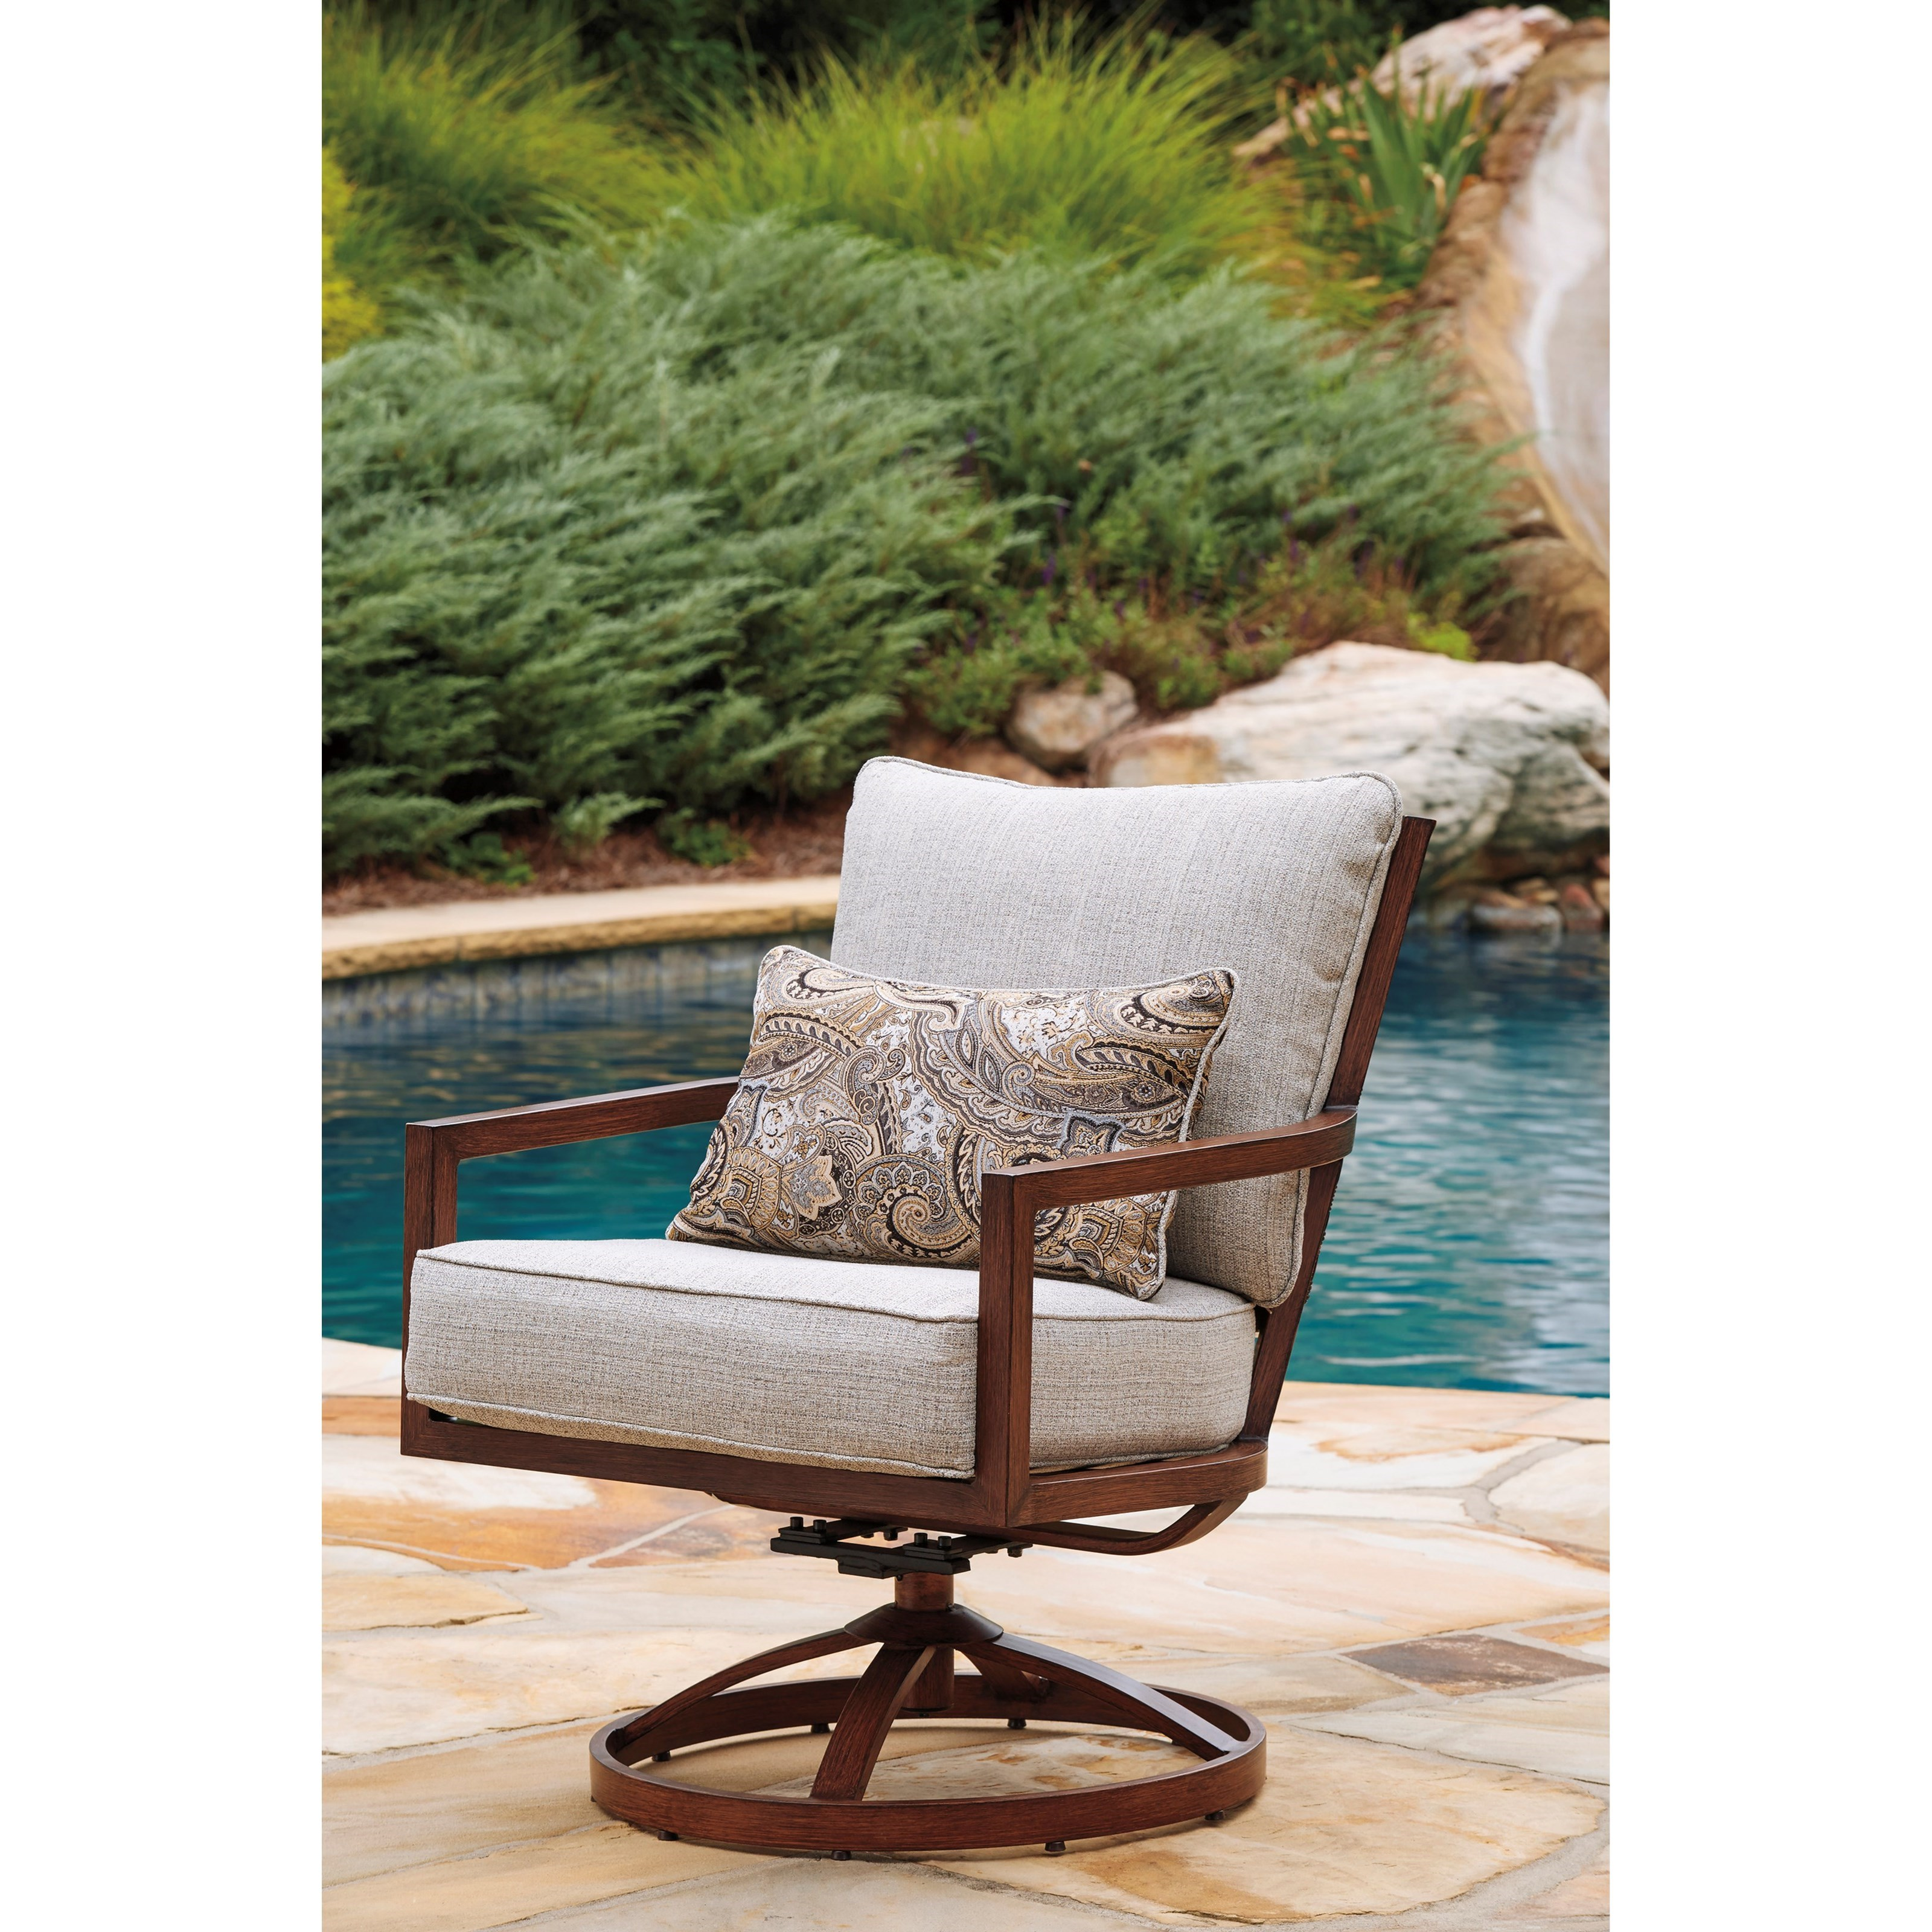 Discounted Furniture Stores Near Me: Signature Design By Ashley Zoranne Set Of 2 Swivel Lounge